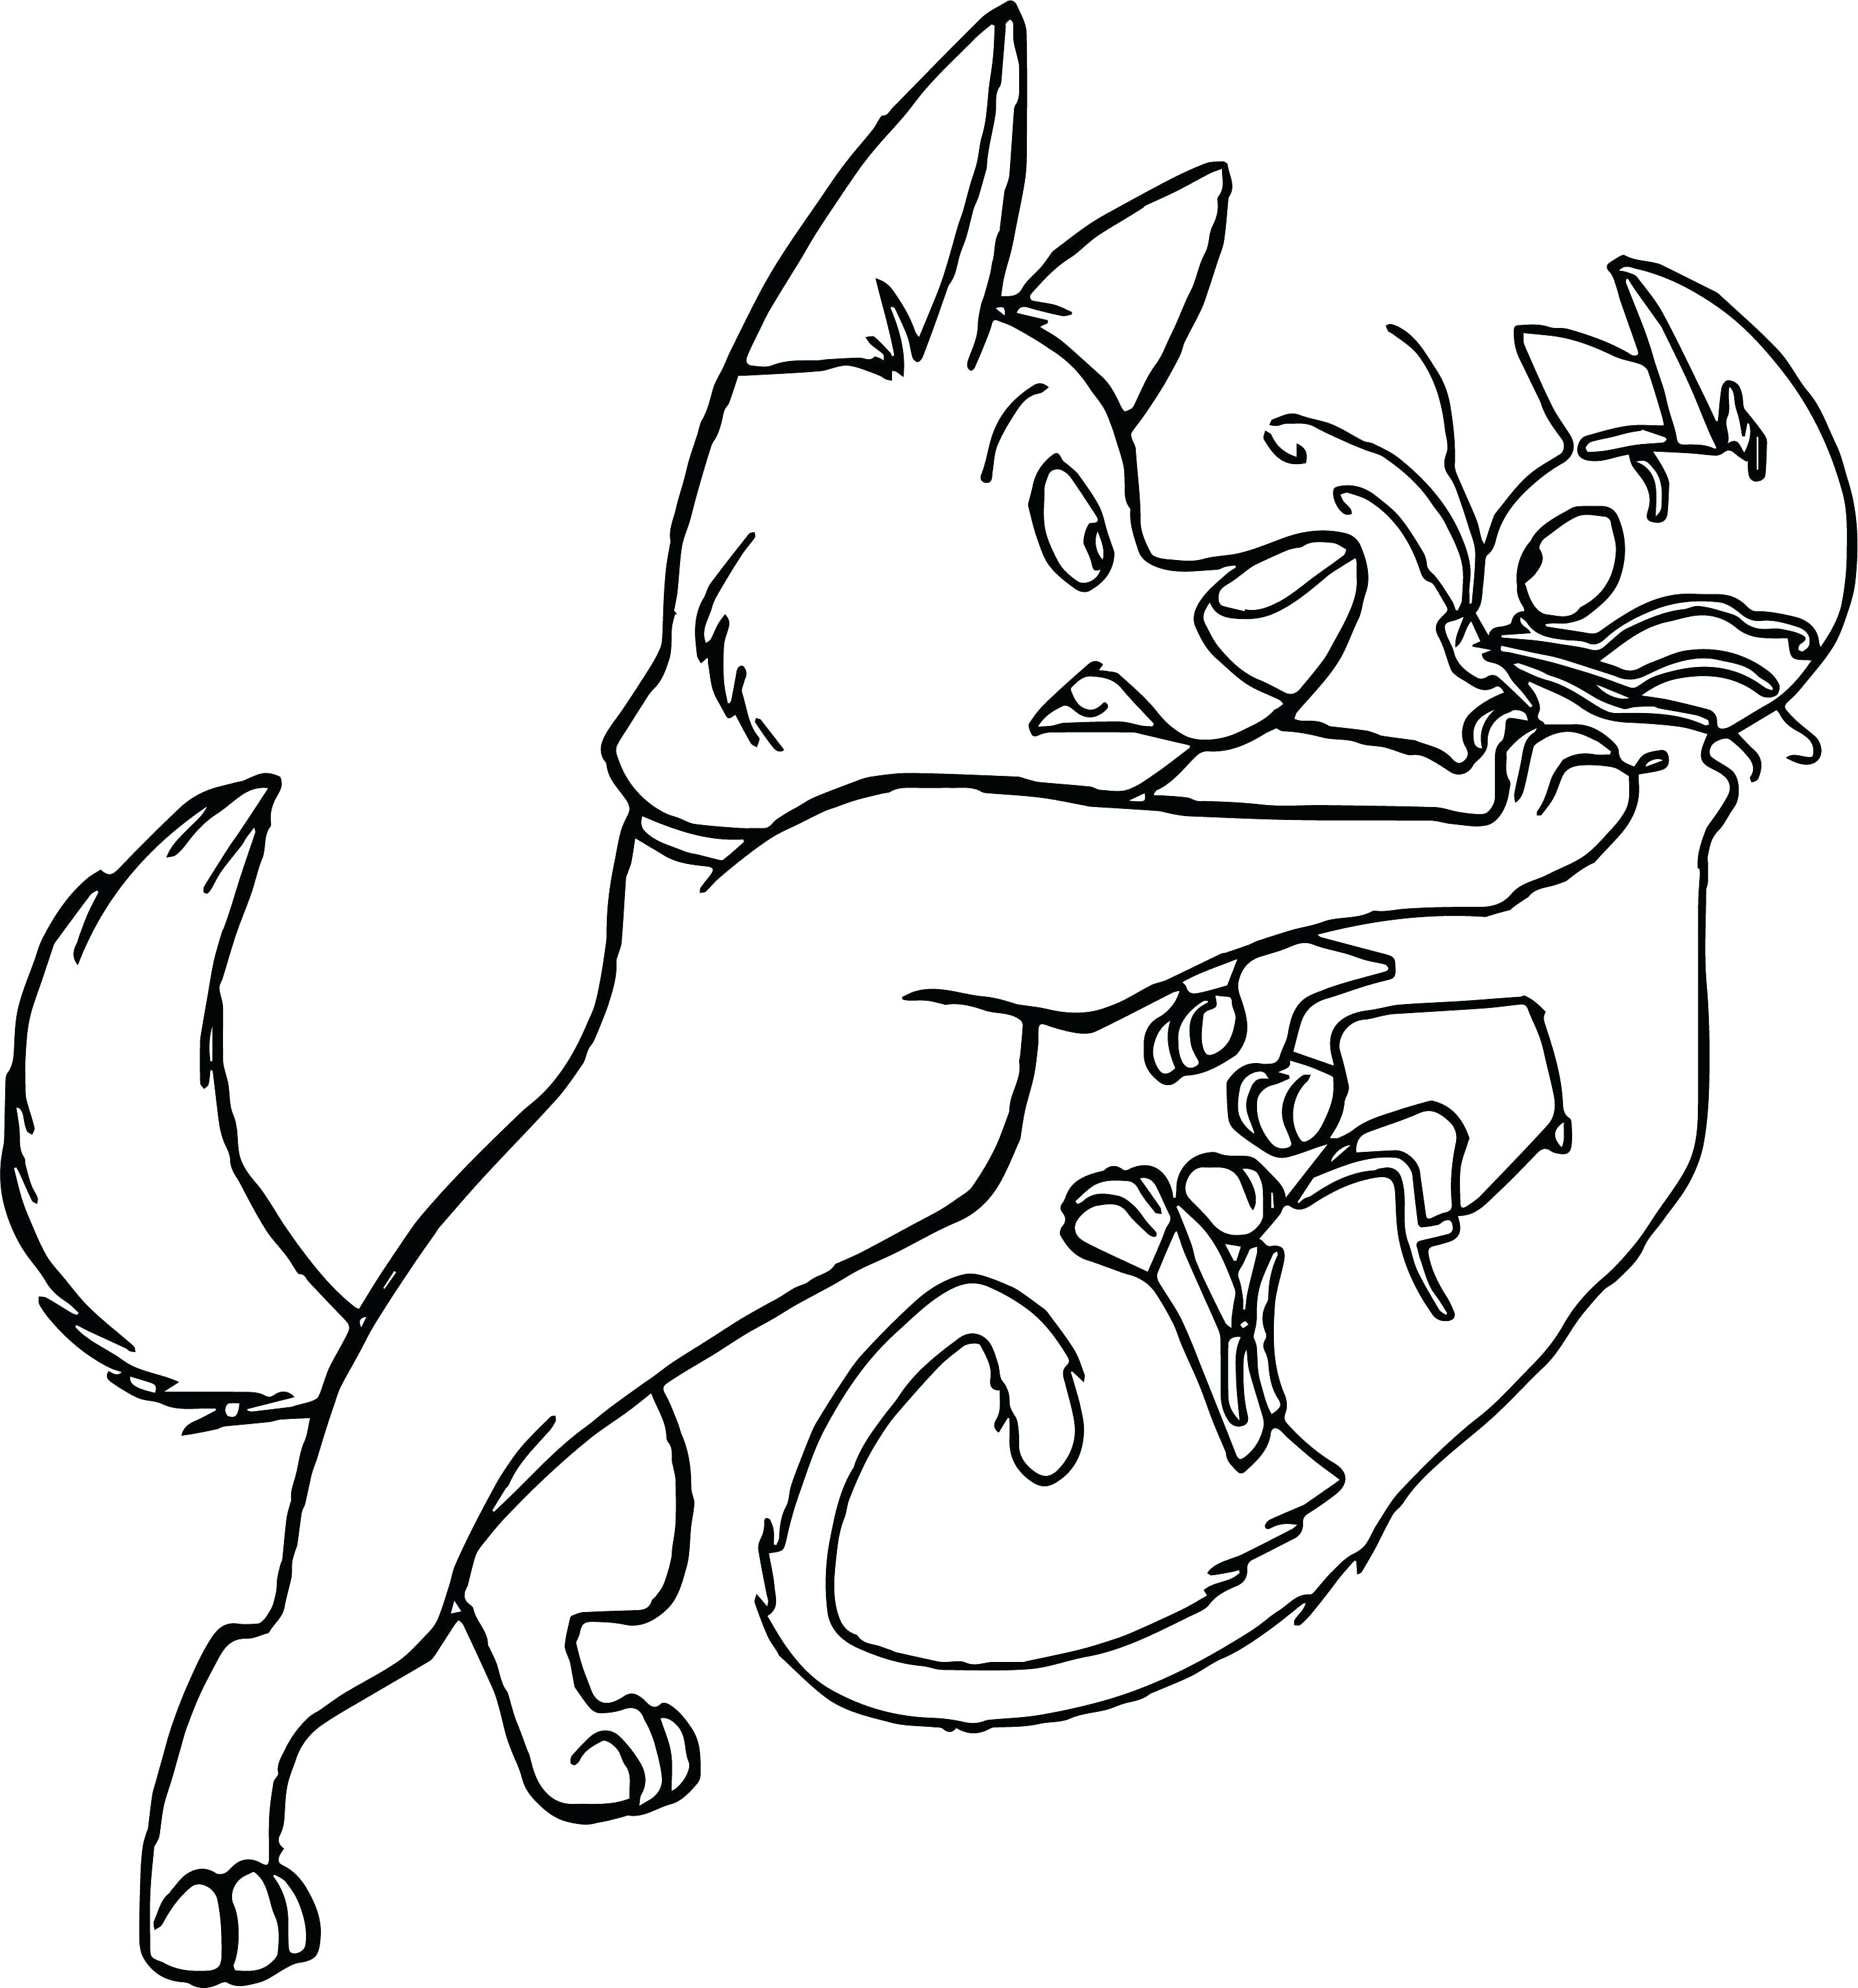 2866x3067 Coloring Coloring Pages Of Cats And Dogs